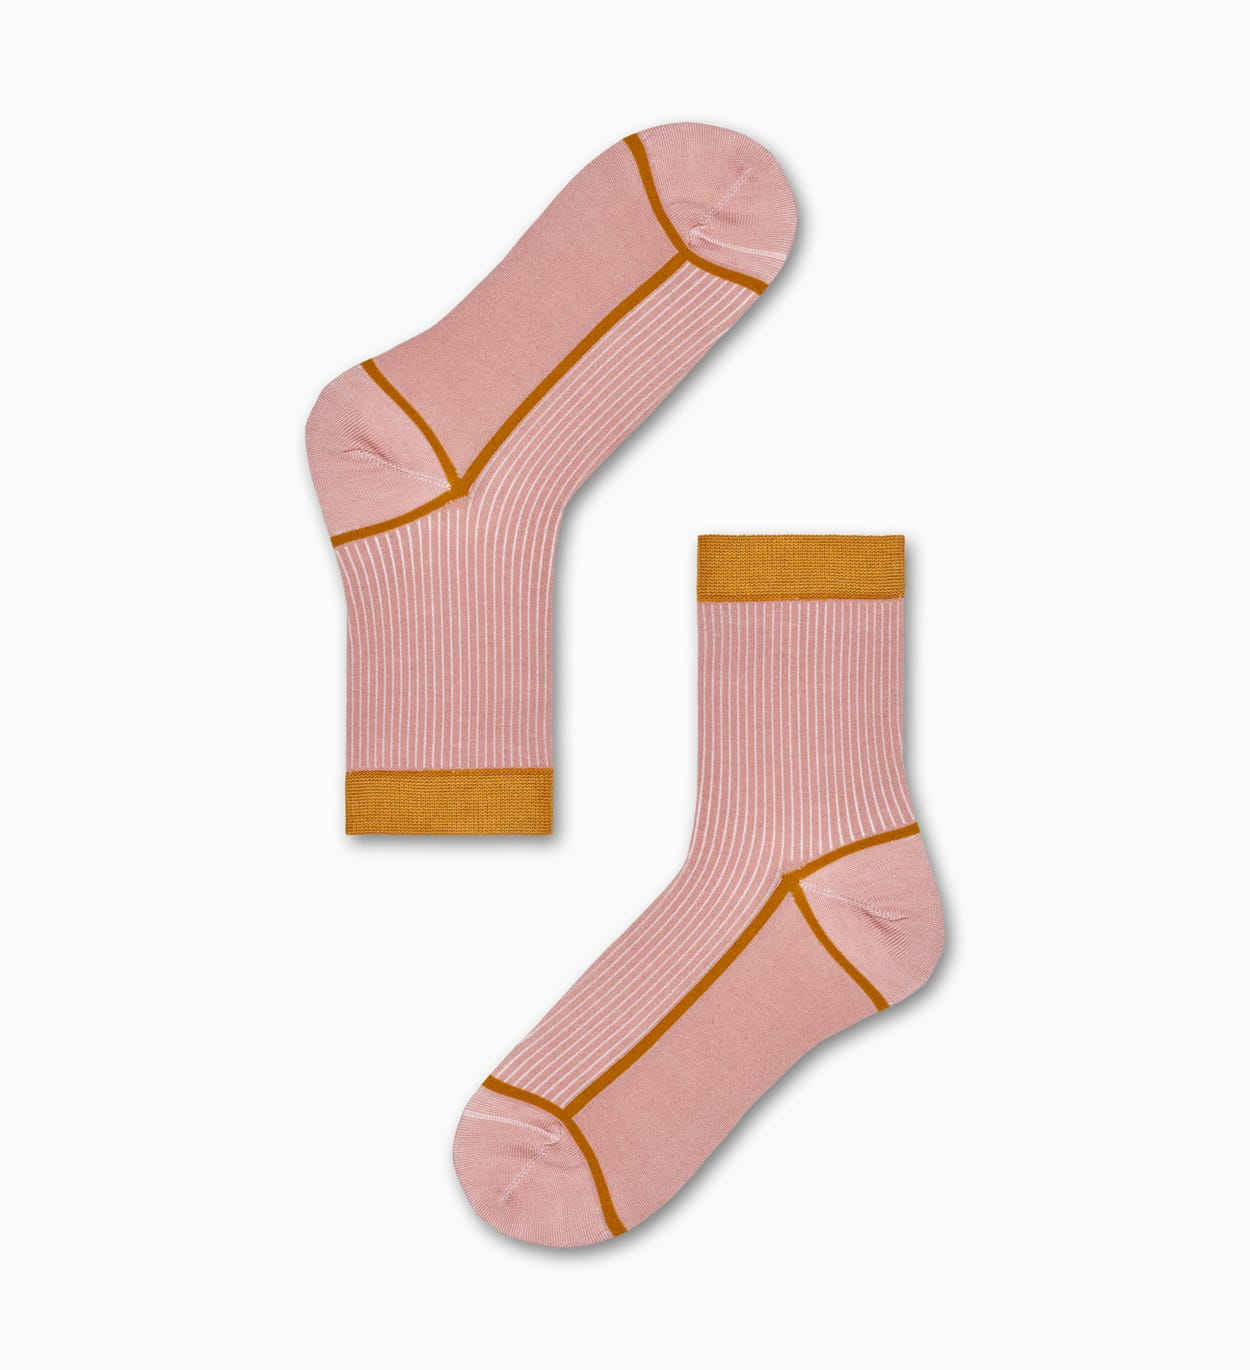 Lily Ankle Socks, Pink - Hysteria | Happy Socks